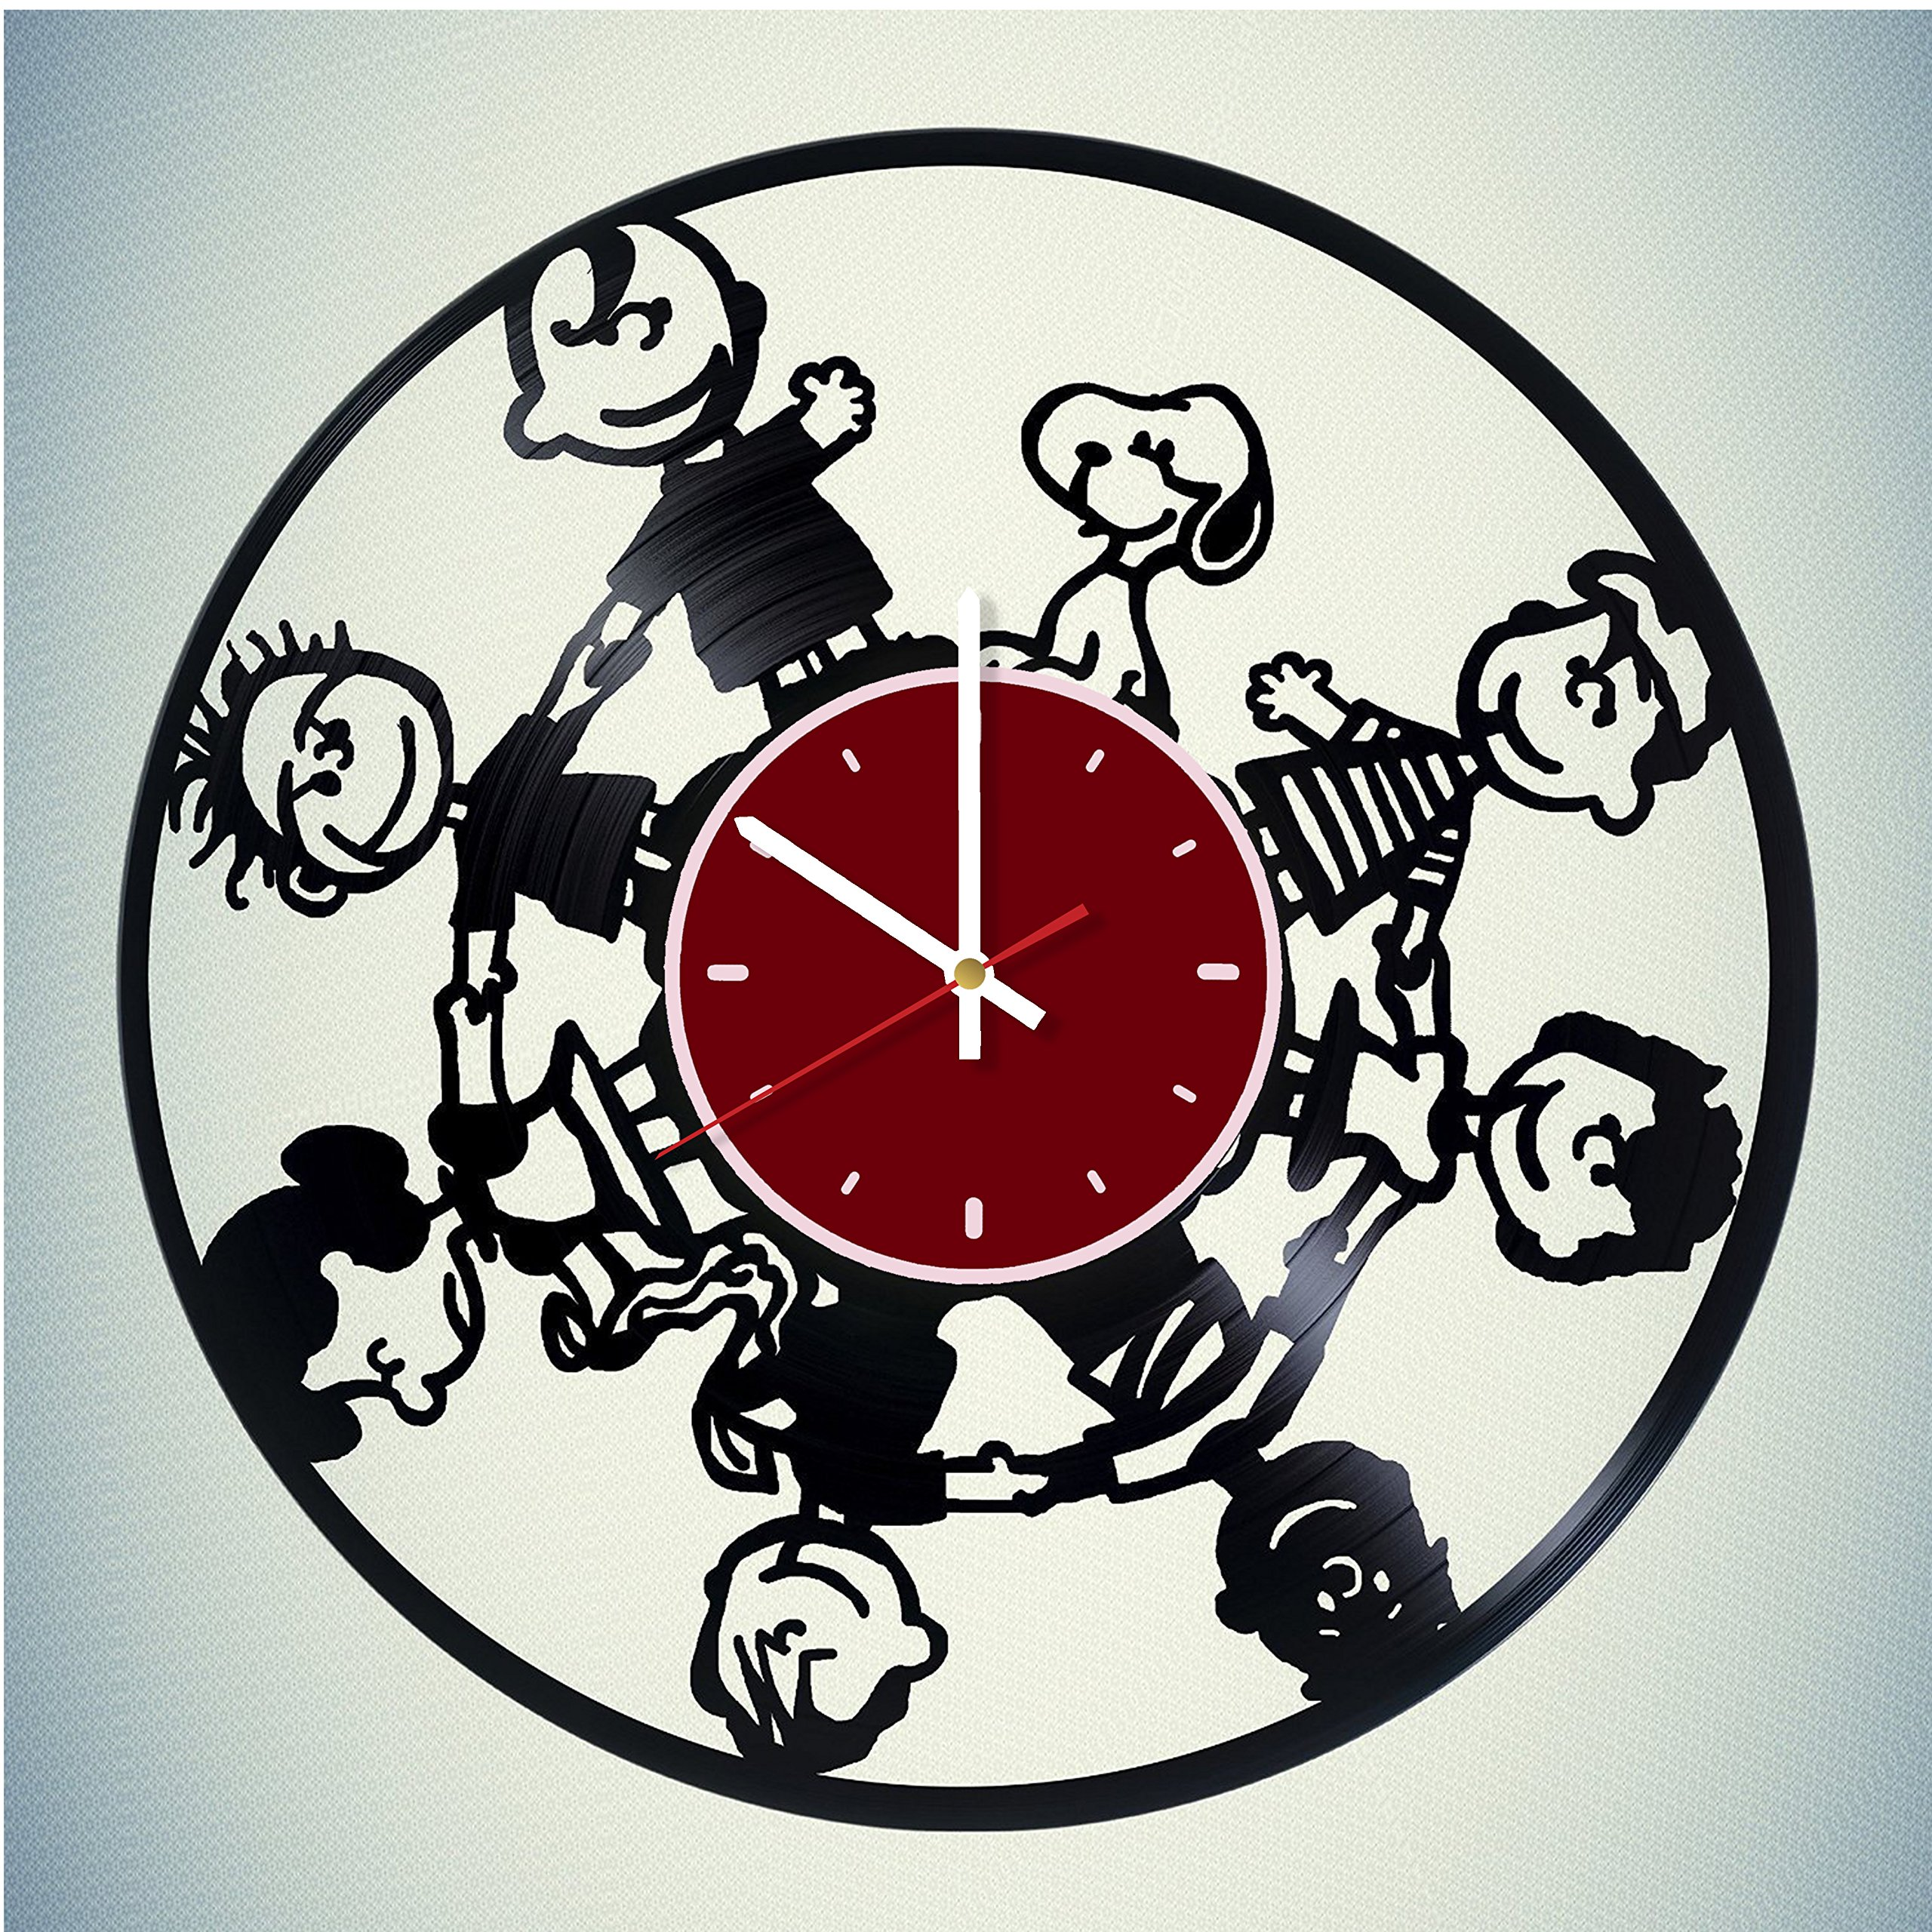 Peanuts Snoopy Charlie Brown Vinyl Wall Clock Living Room Home Decor